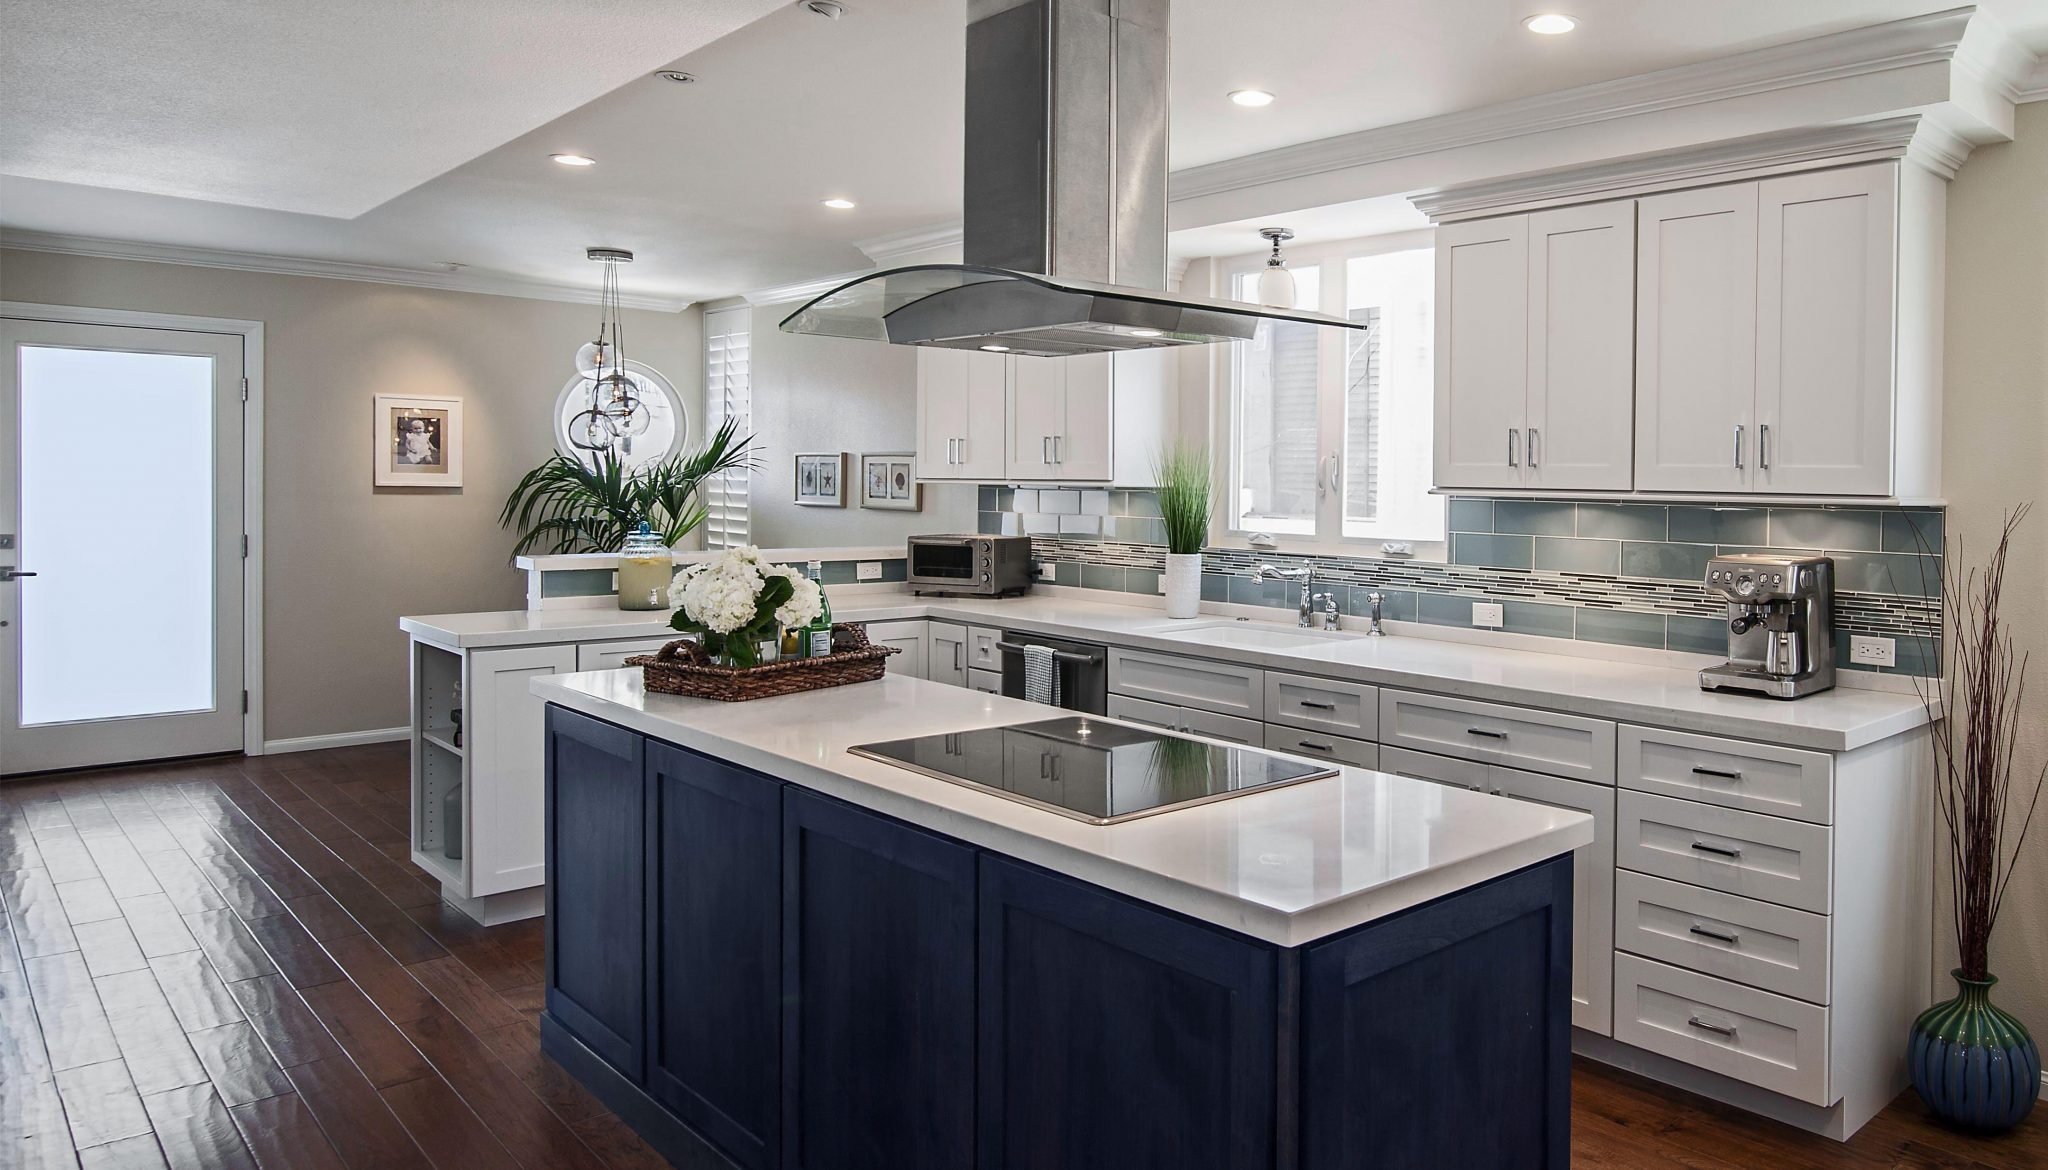 Kitchen Remodel Profile: Reflections of the Sand, Sea and Sky